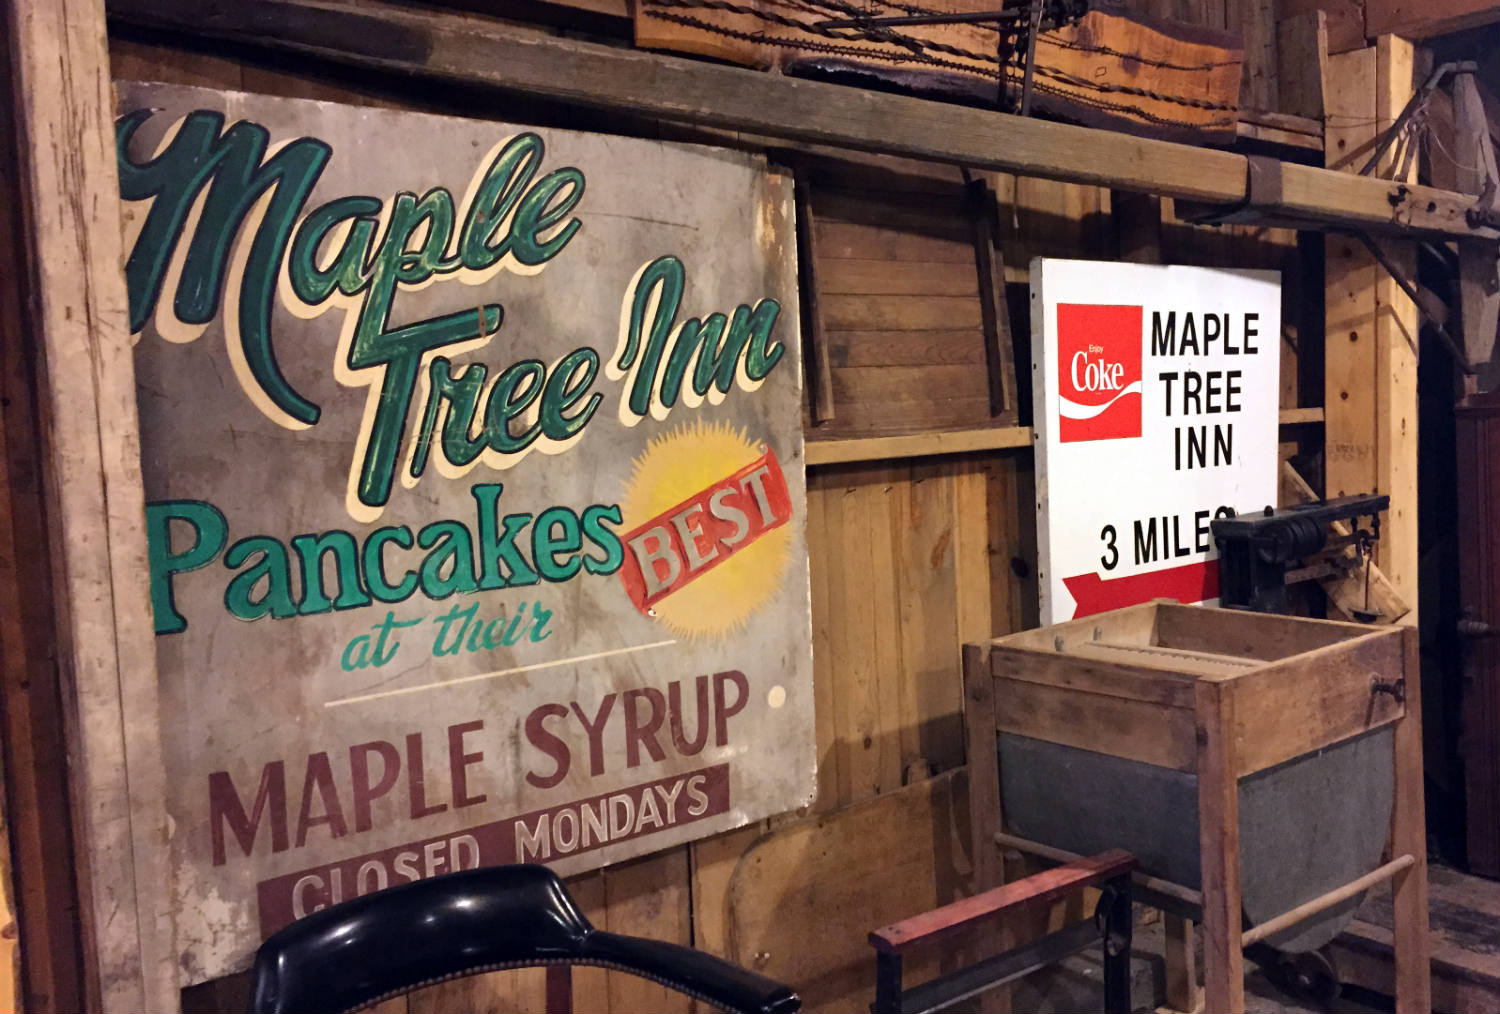 Old Maple Tree Inn signs in New York